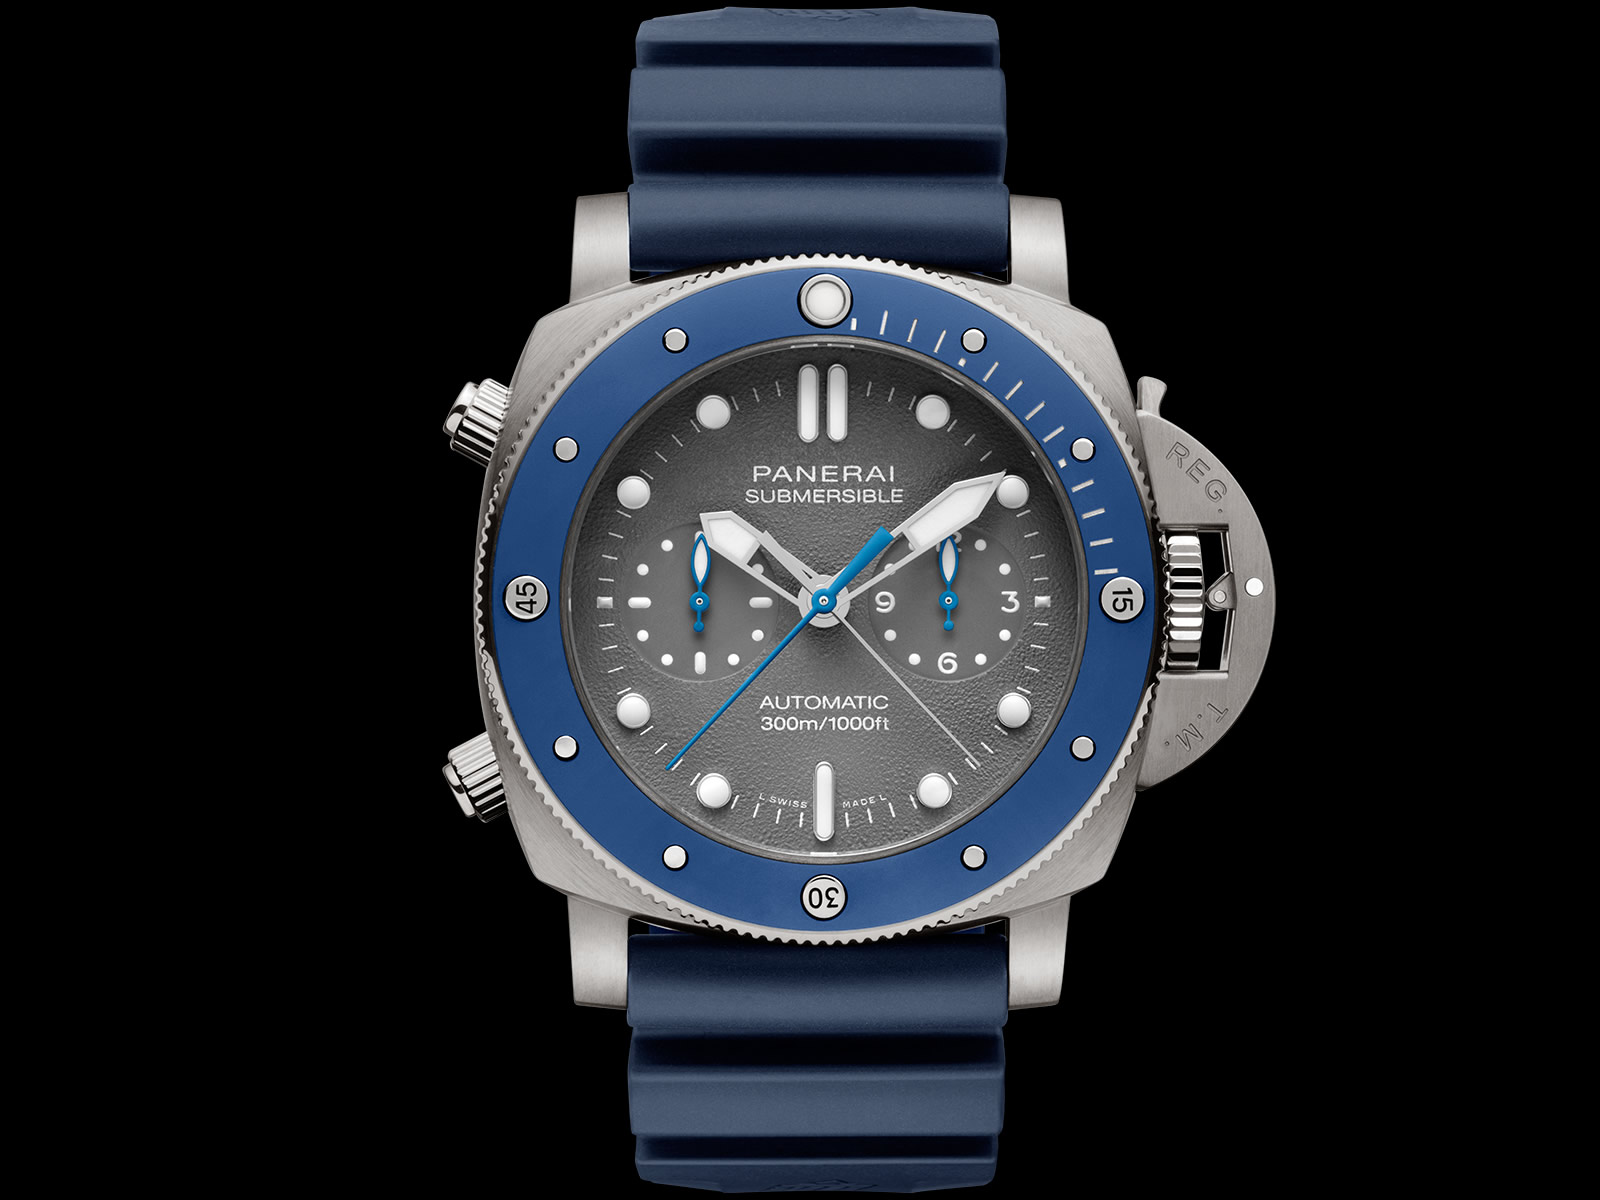 pam00982-officine-panerai-submersible-chrono-guillaume-nery-edition-3-.jpg